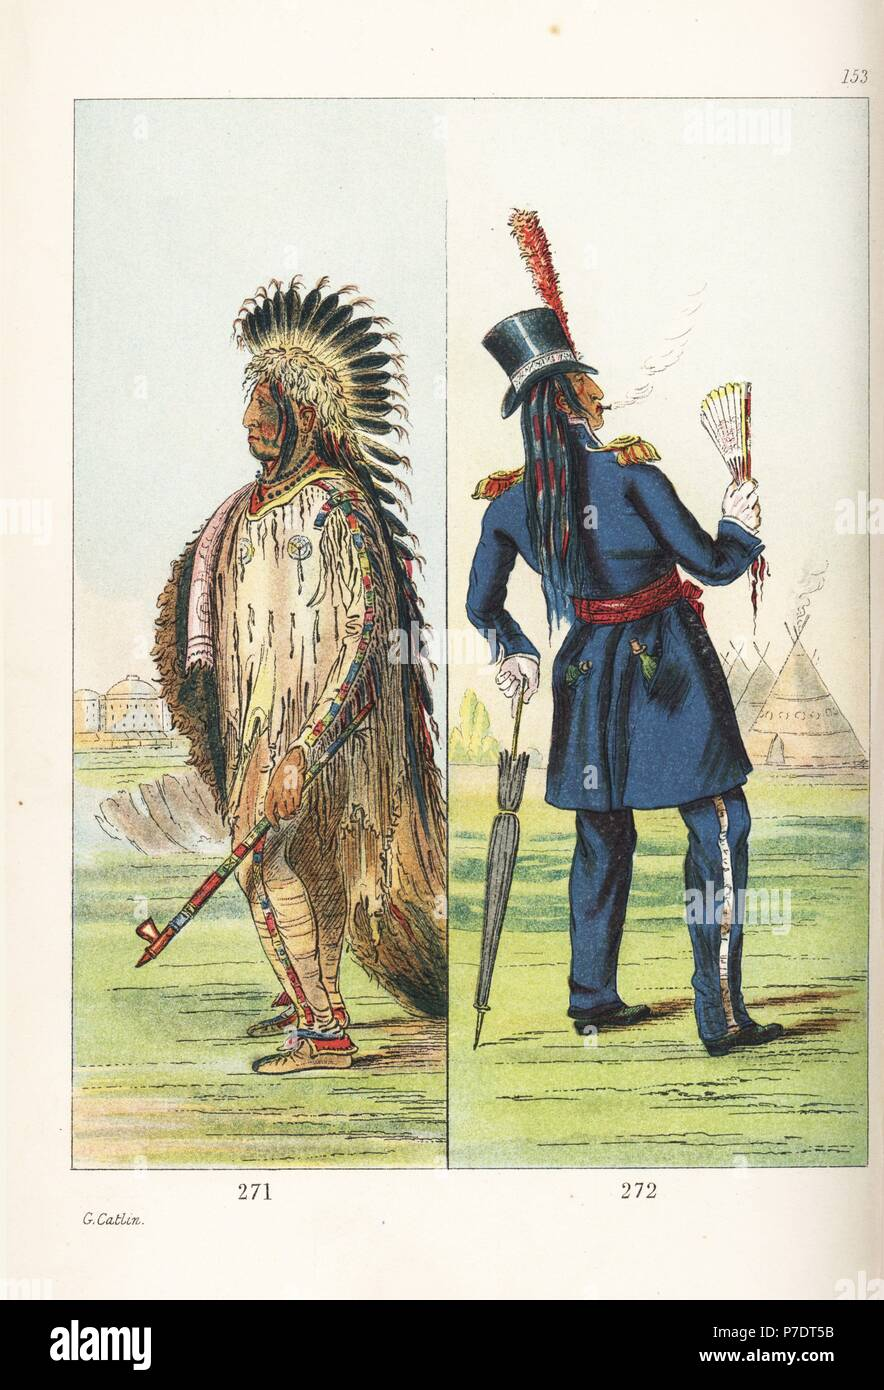 Assinboine chief Wi-jun-jon, Pigeon's Egg Head, in traditional costume of goatskin shirt and leggings, buffalo skin robe decorated with scalp-locks, and eagle feather headdress and in western dress after visiting Washington. Handcoloured lithograph from George Catlin's Manners, Customs and Condition of the North American Indians, London, 1841. - Stock Image